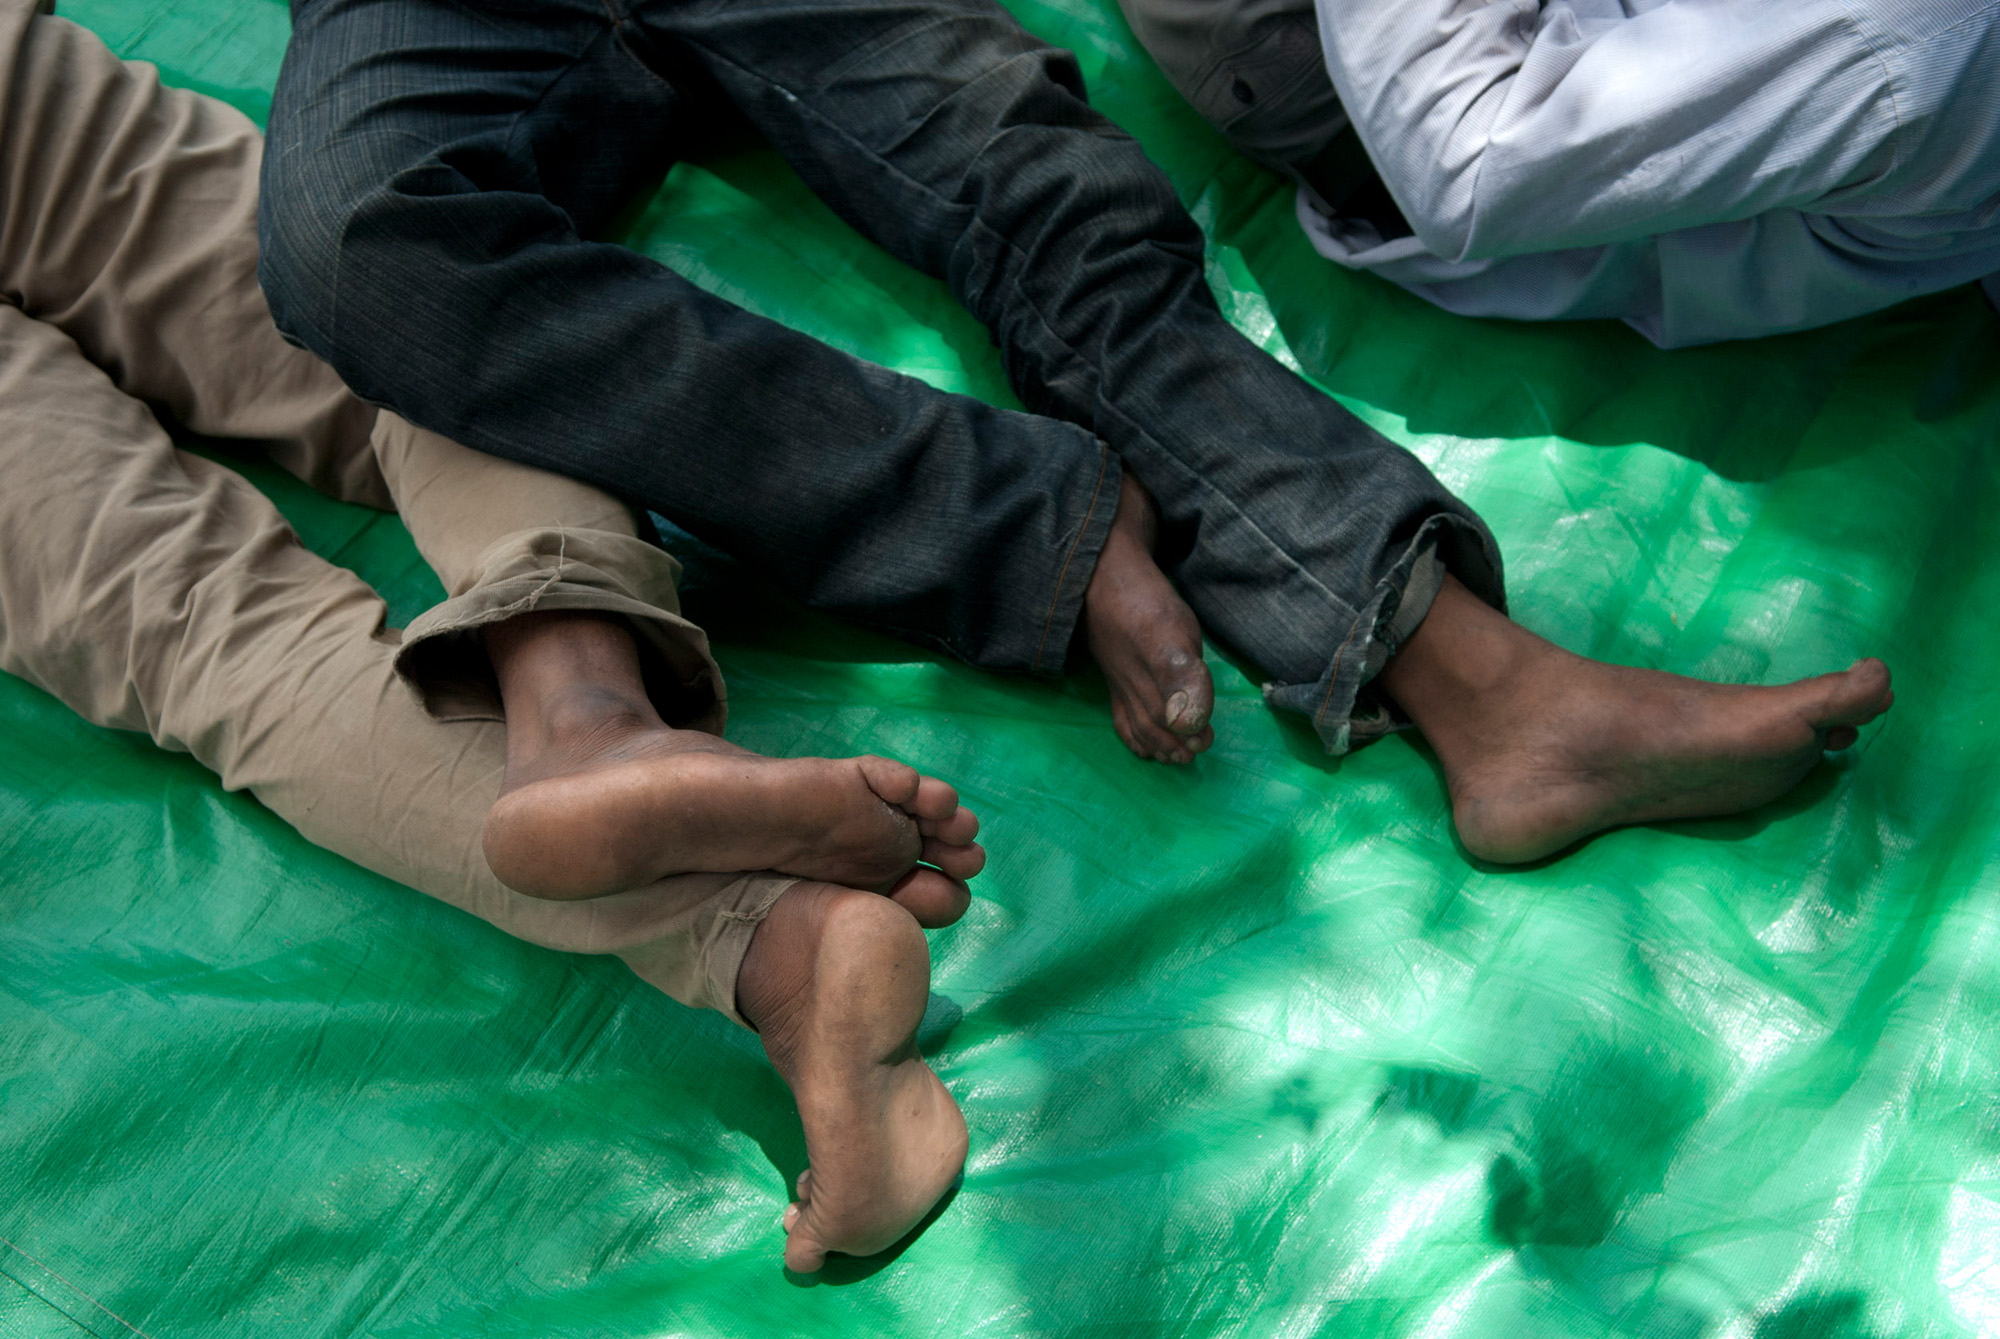 Evicted farmers nap on a tarp during a days-long protest in front of the Cambodian National Assembly Building.